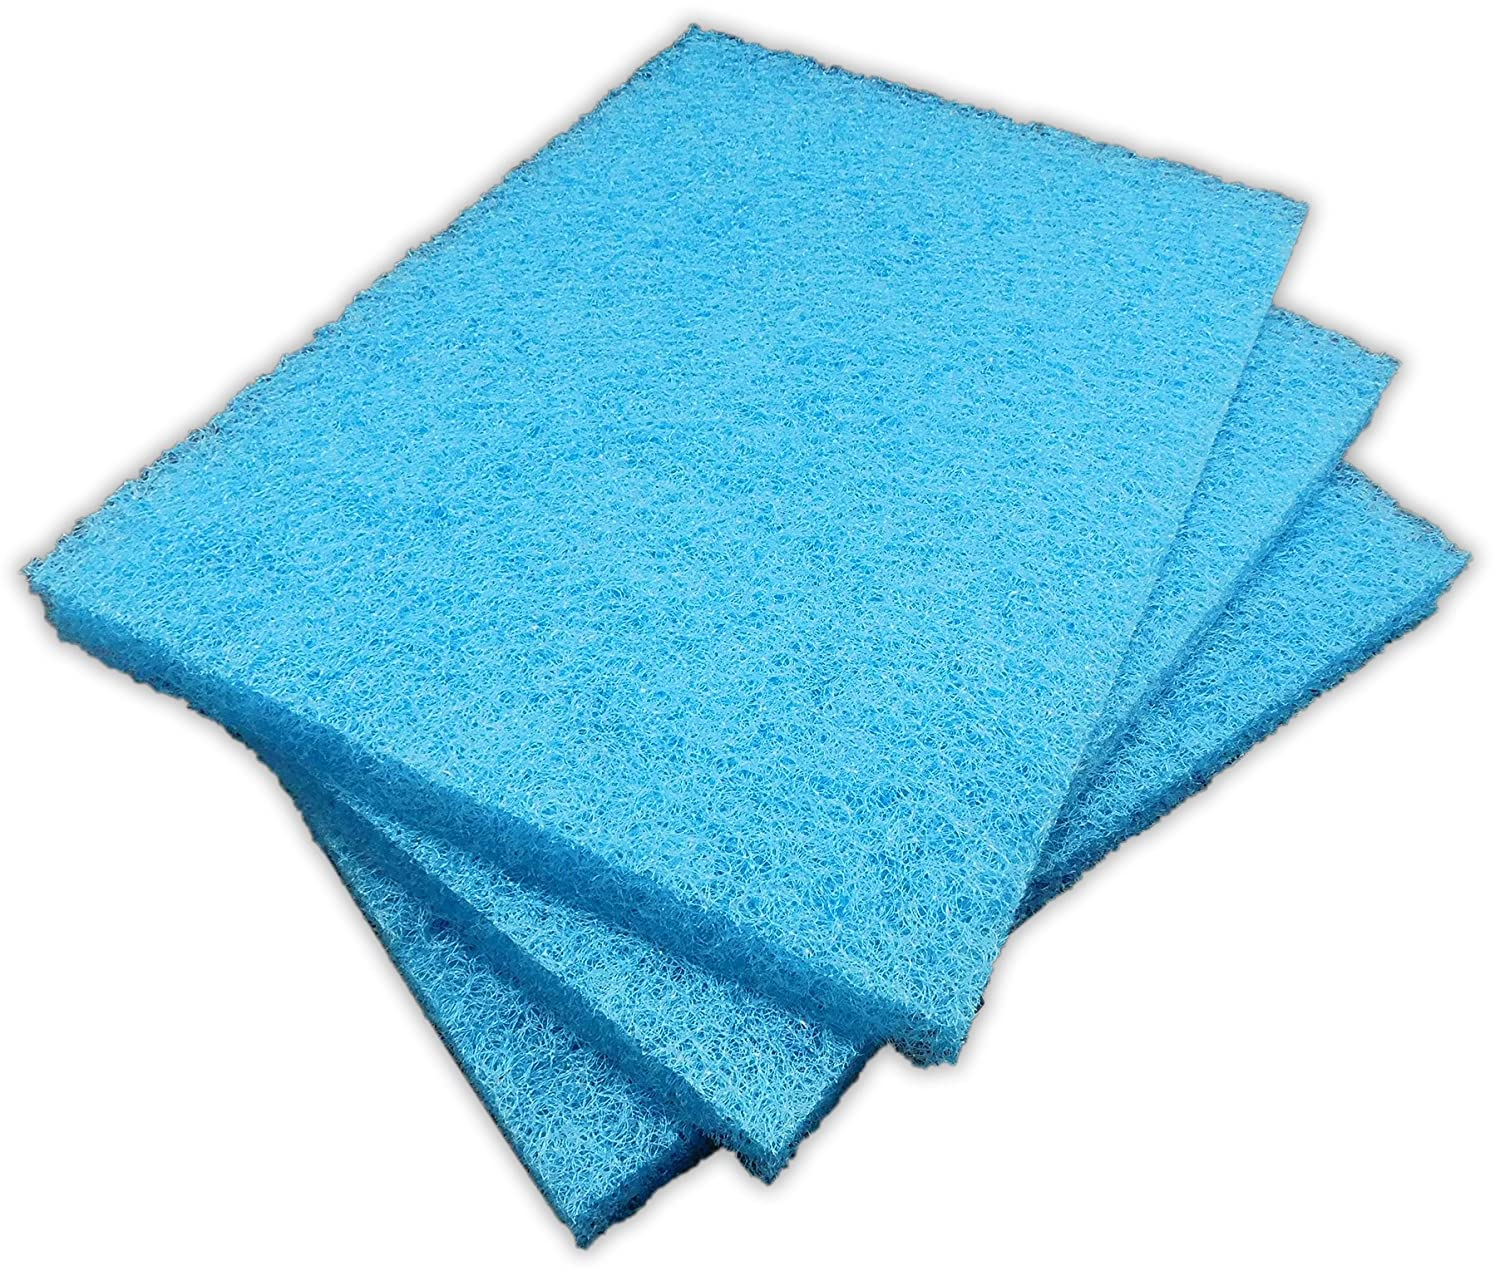 "Aquacadabra Matsumi Jap Mat 25"" x 18"" - 3x sheets (64cm x 46cm x 5cm) Japanese Matting - 50mm thick"